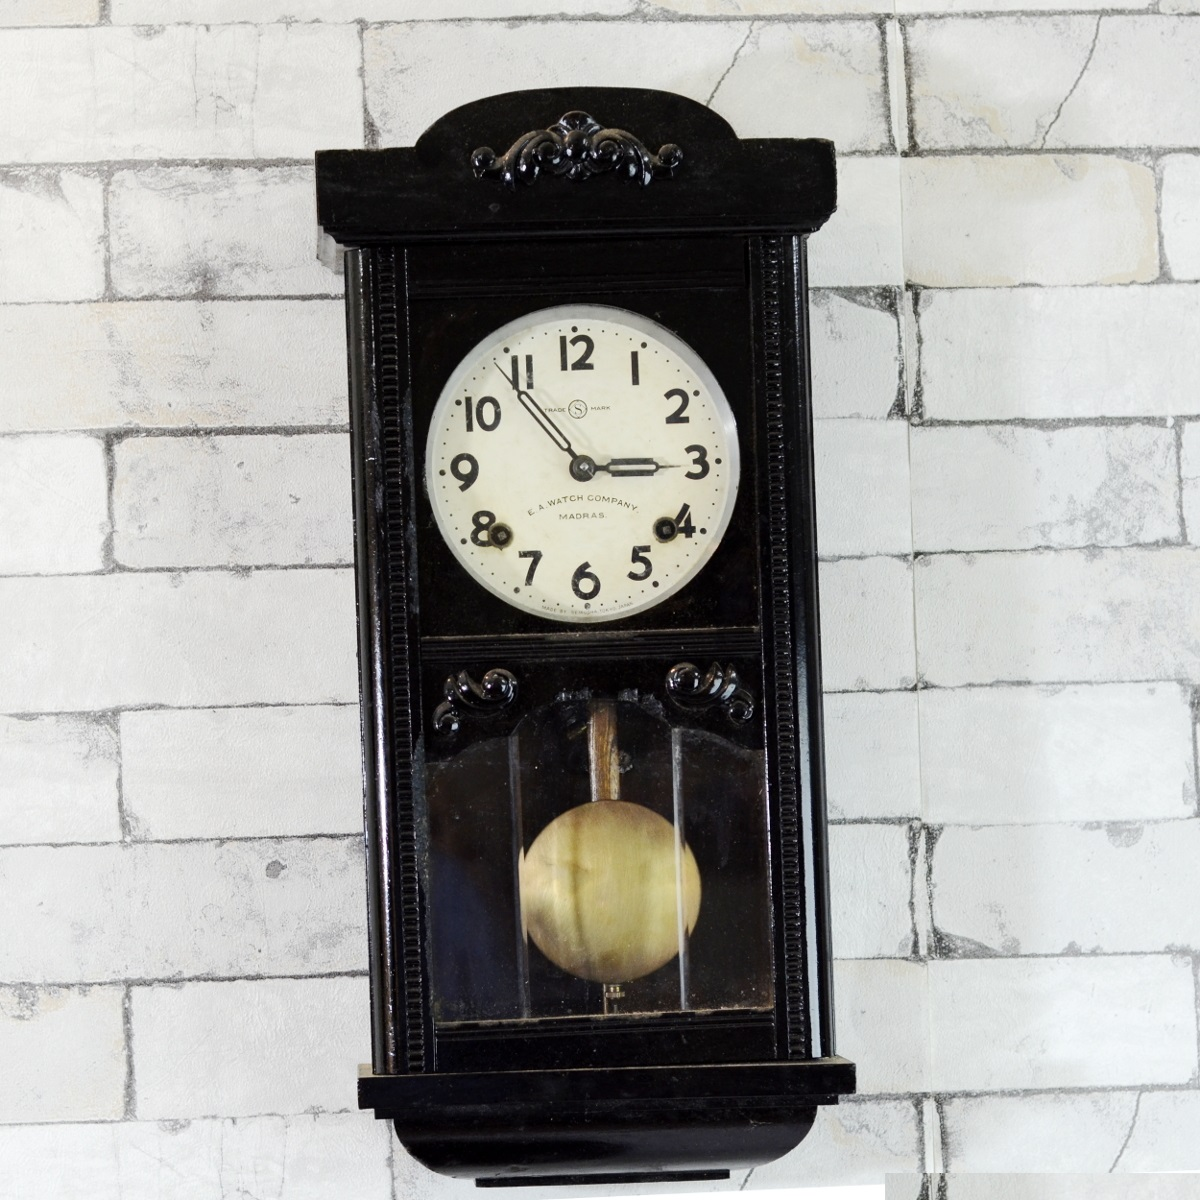 Wooden Wall Clock Seikosha Mini Tower 1940 Pendulum Wall Clock - Antikcart